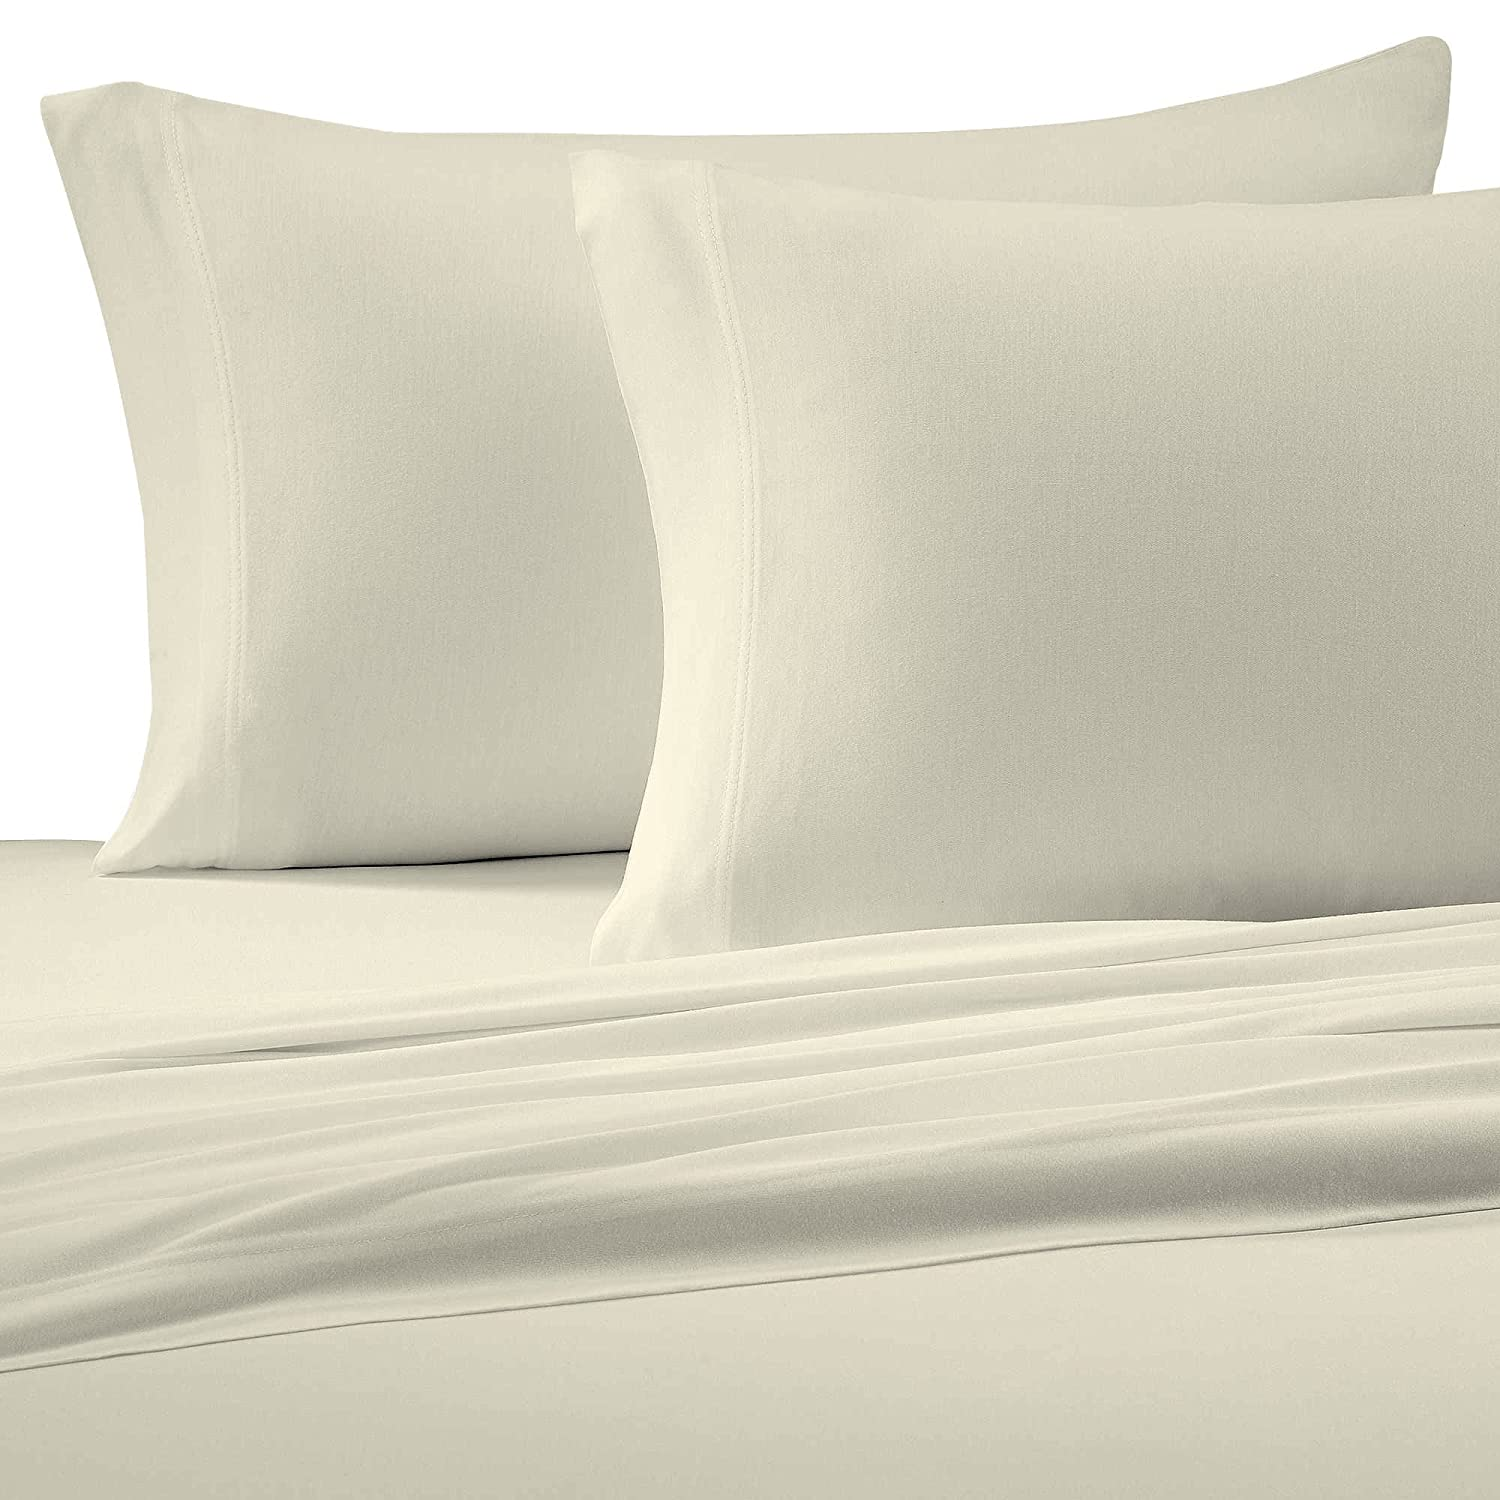 Amazoncom Brielle Cotton Jersey Knit T Shirt Sheet Set King